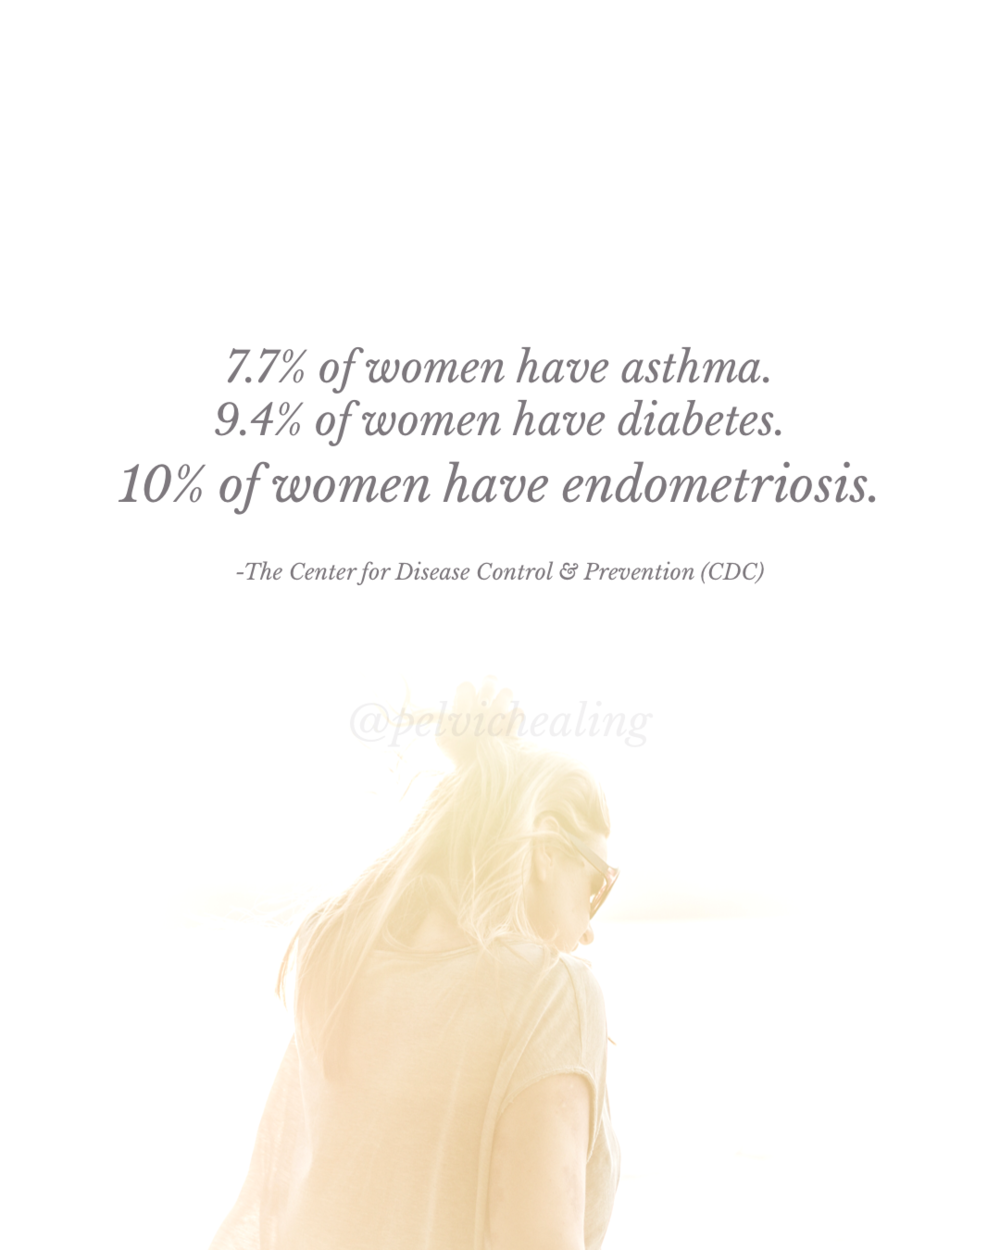 Do I have endometriosis? Check out these telling facts and symptoms.